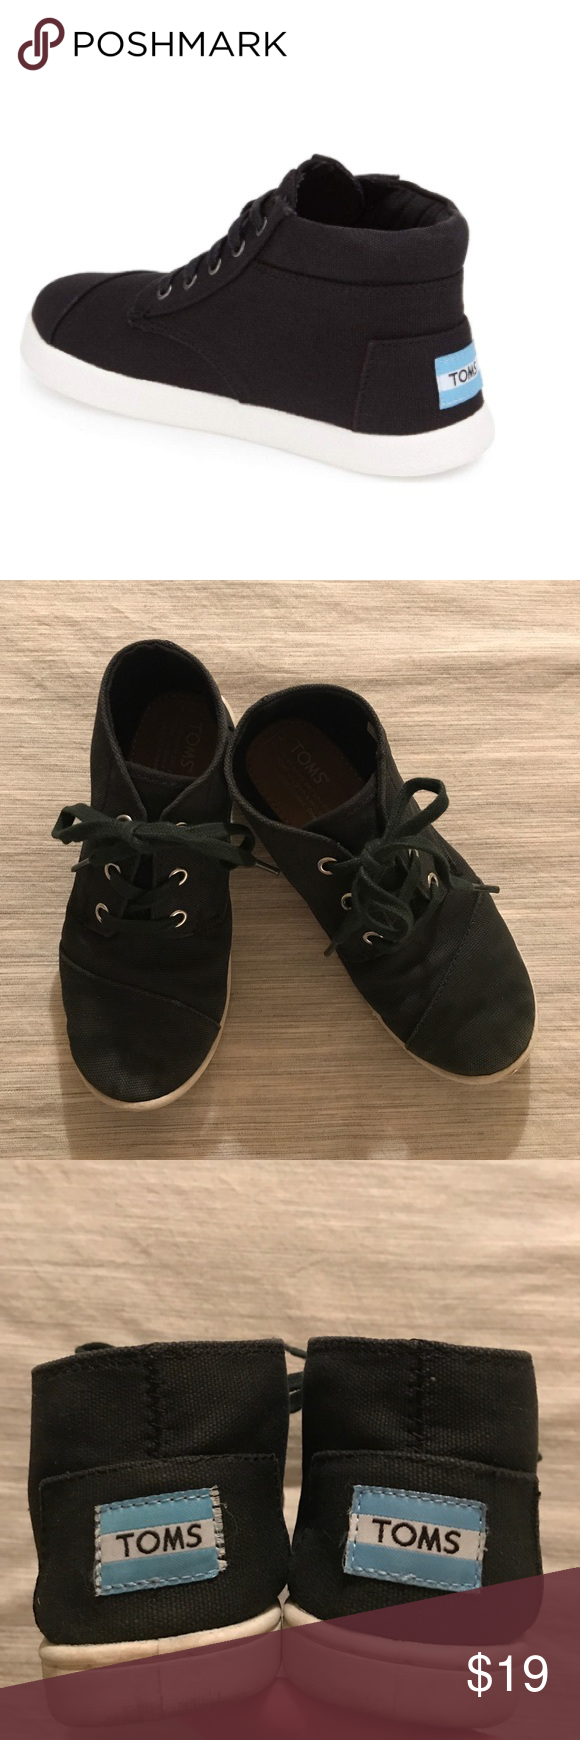 Toms boys black high top shoes/sneakers